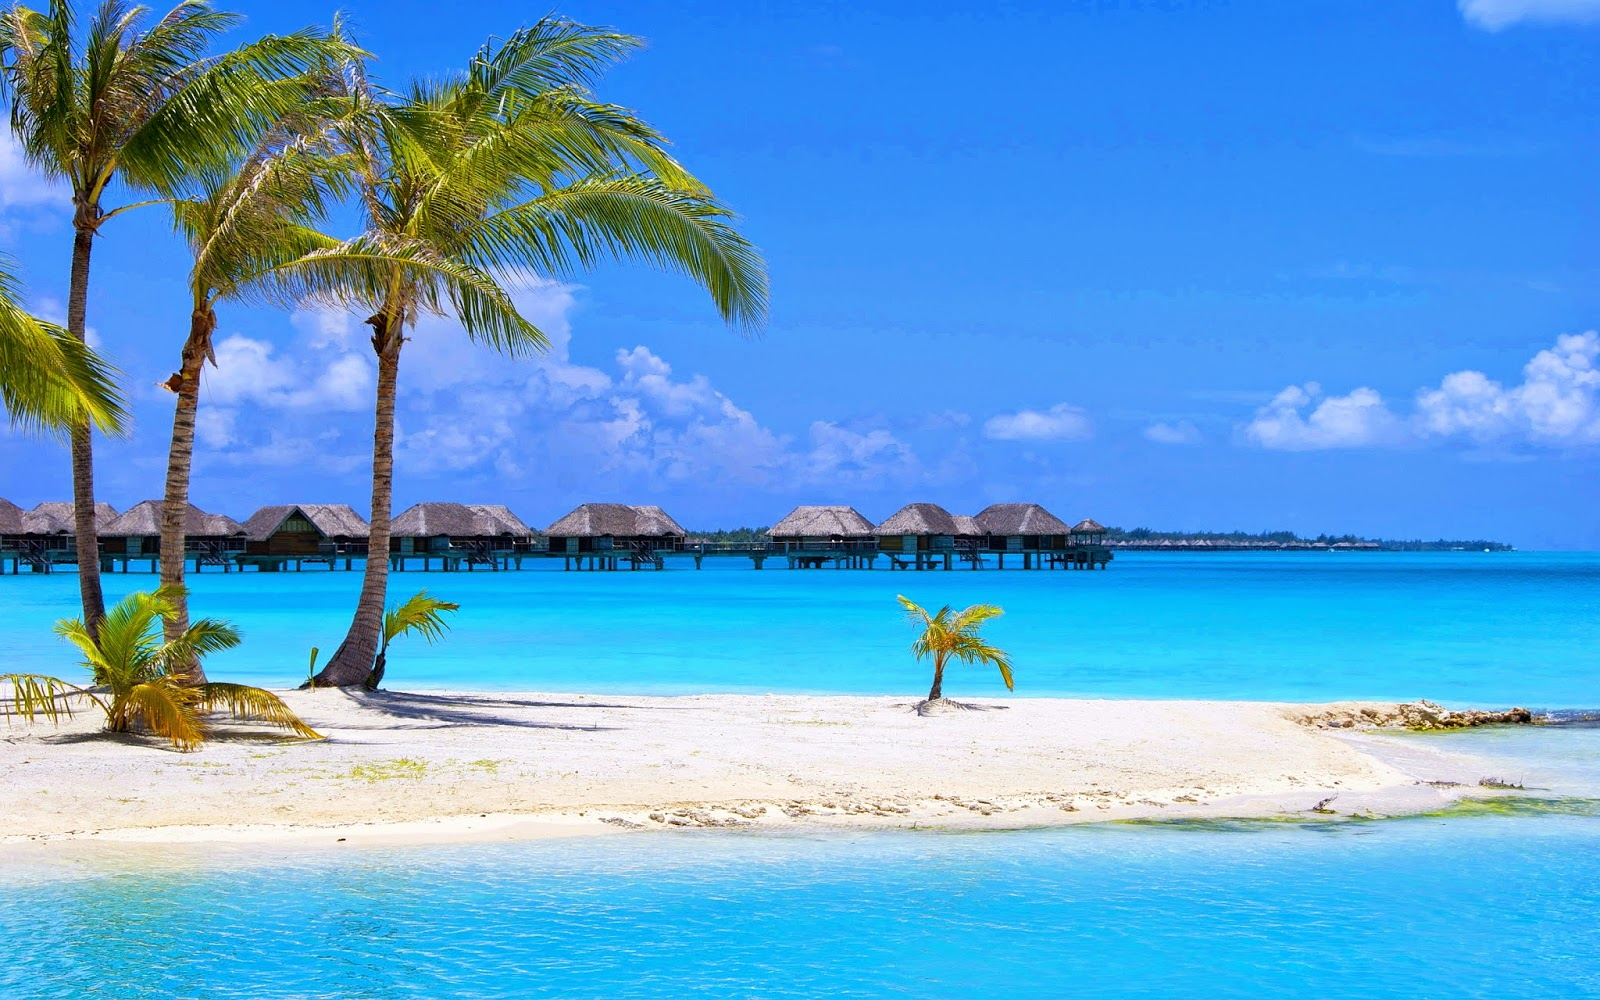 Hd Tropical Island Beach Paradise Wallpapers And Backgrounds: Desktop Backgrounds 4U: Beach Backgrounds